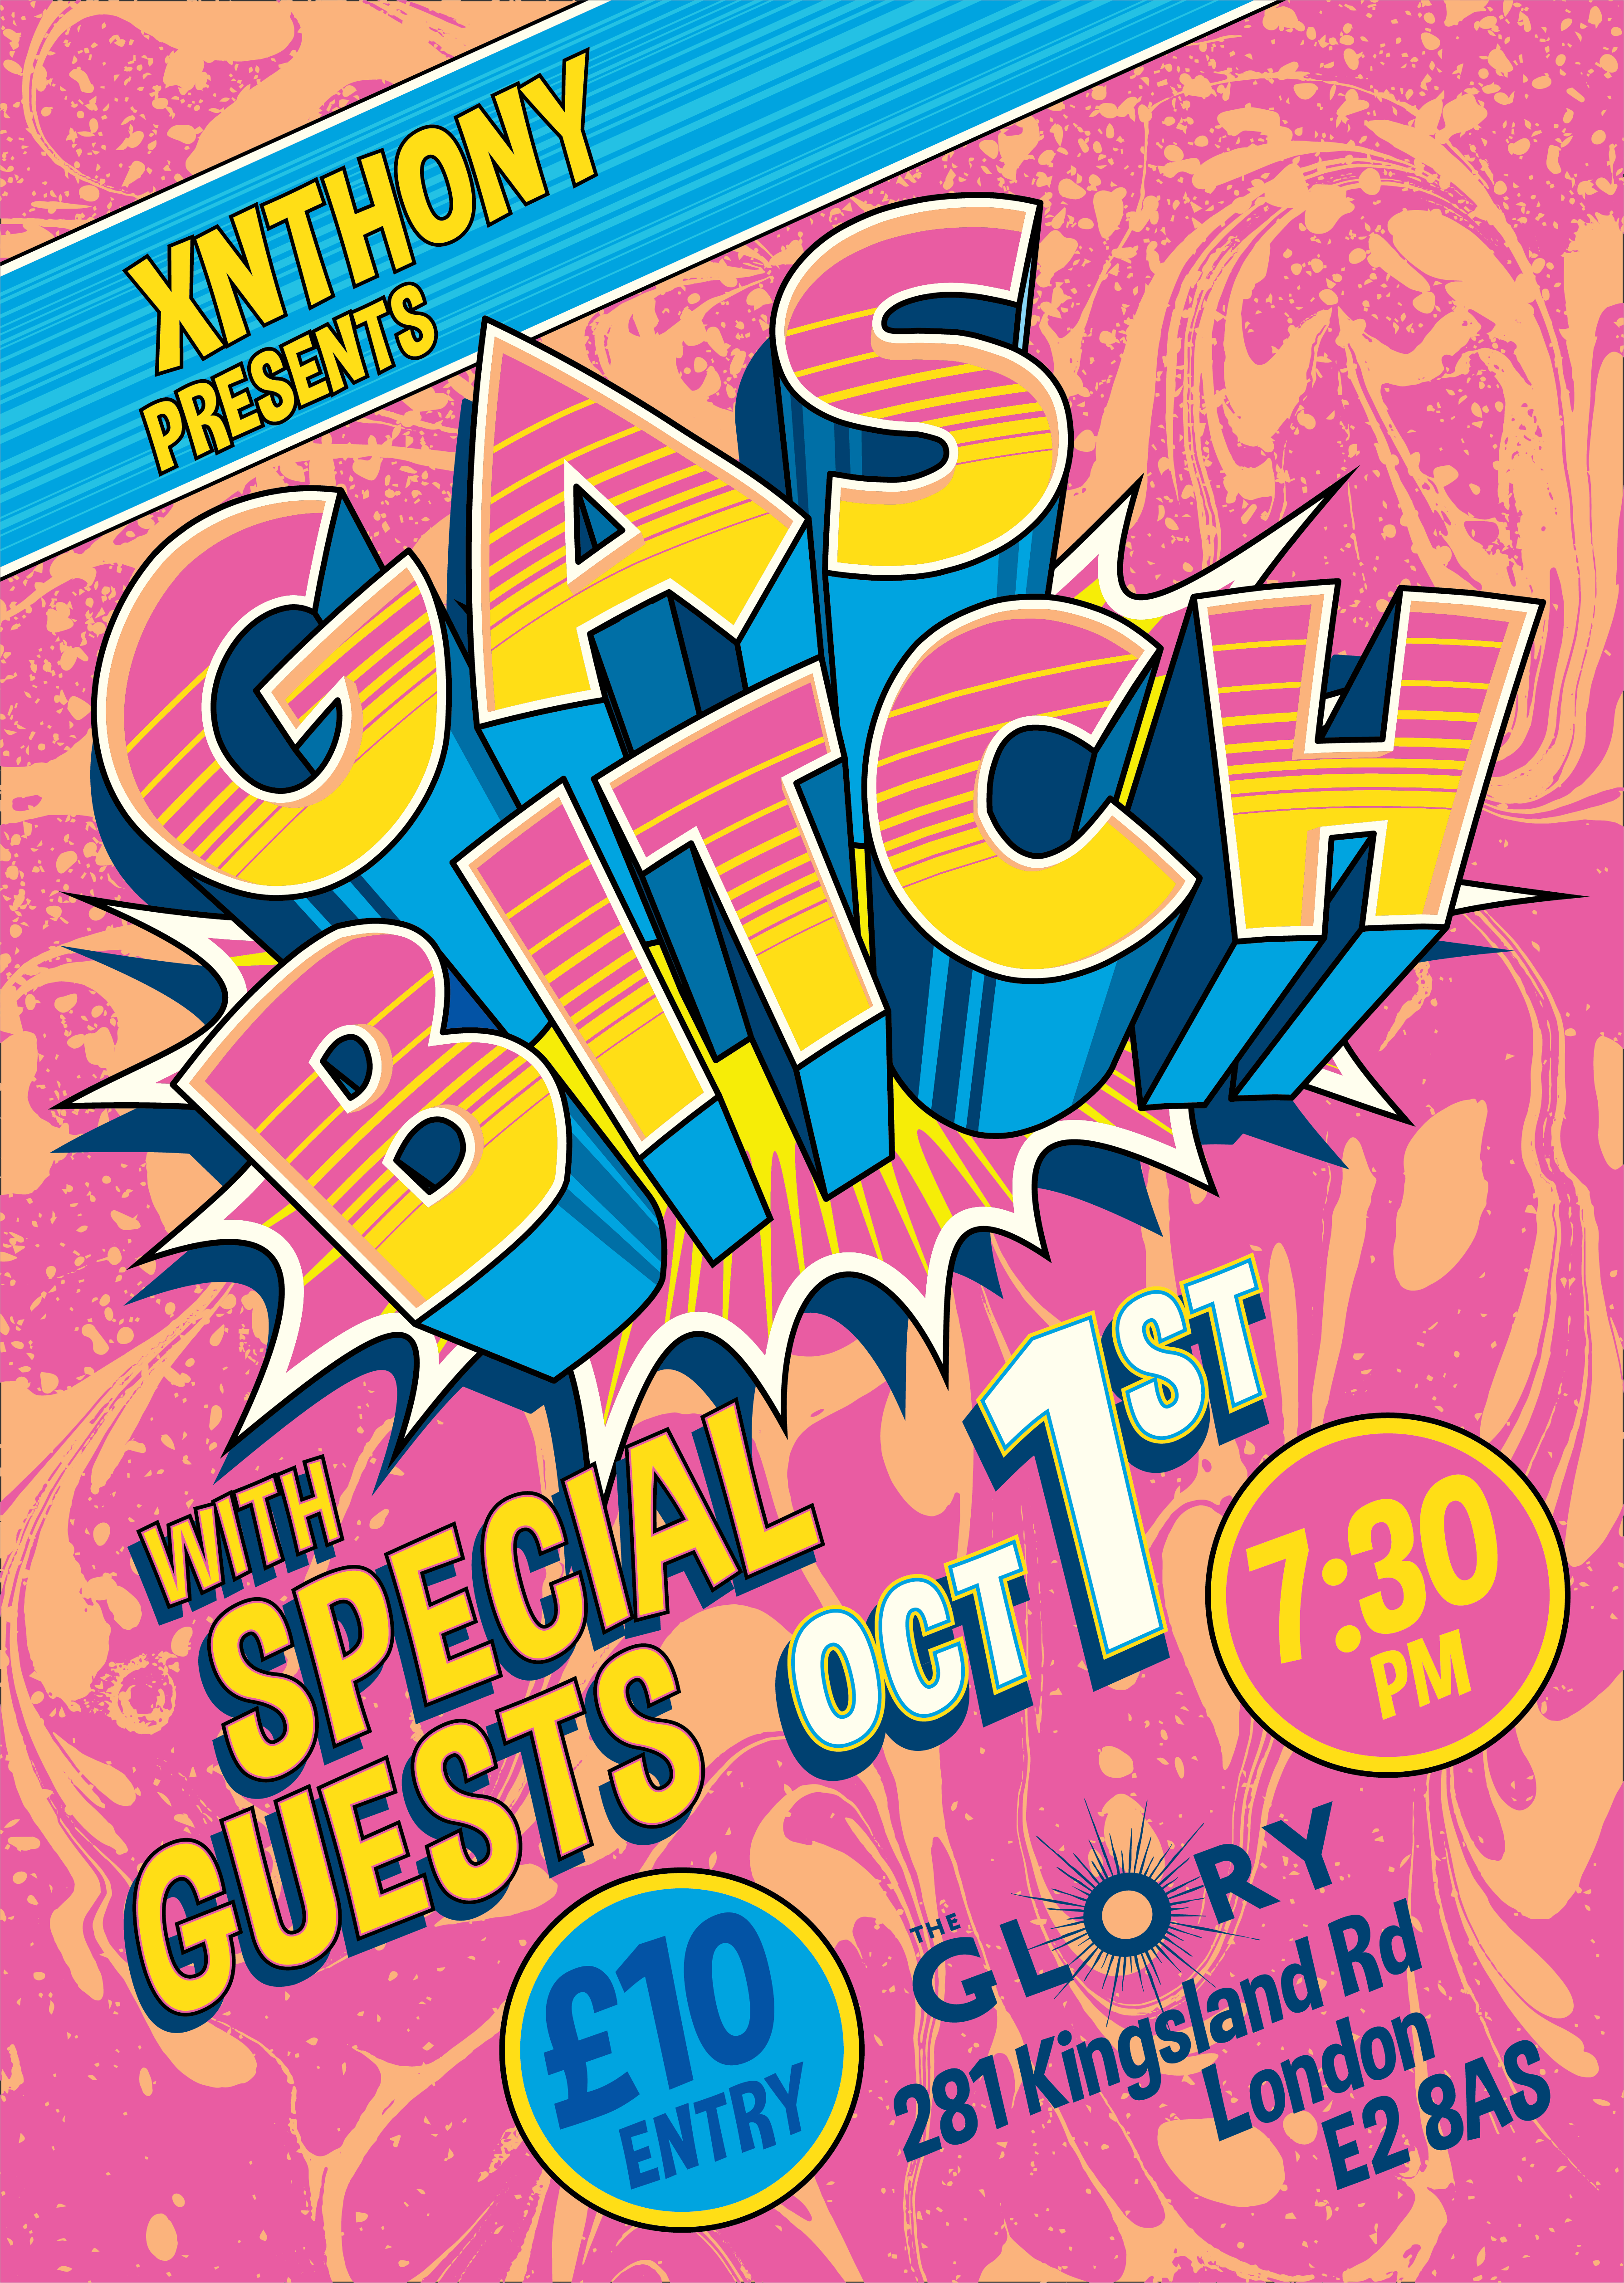 Gas Bitch! A night of GAS comedy with Xnthony